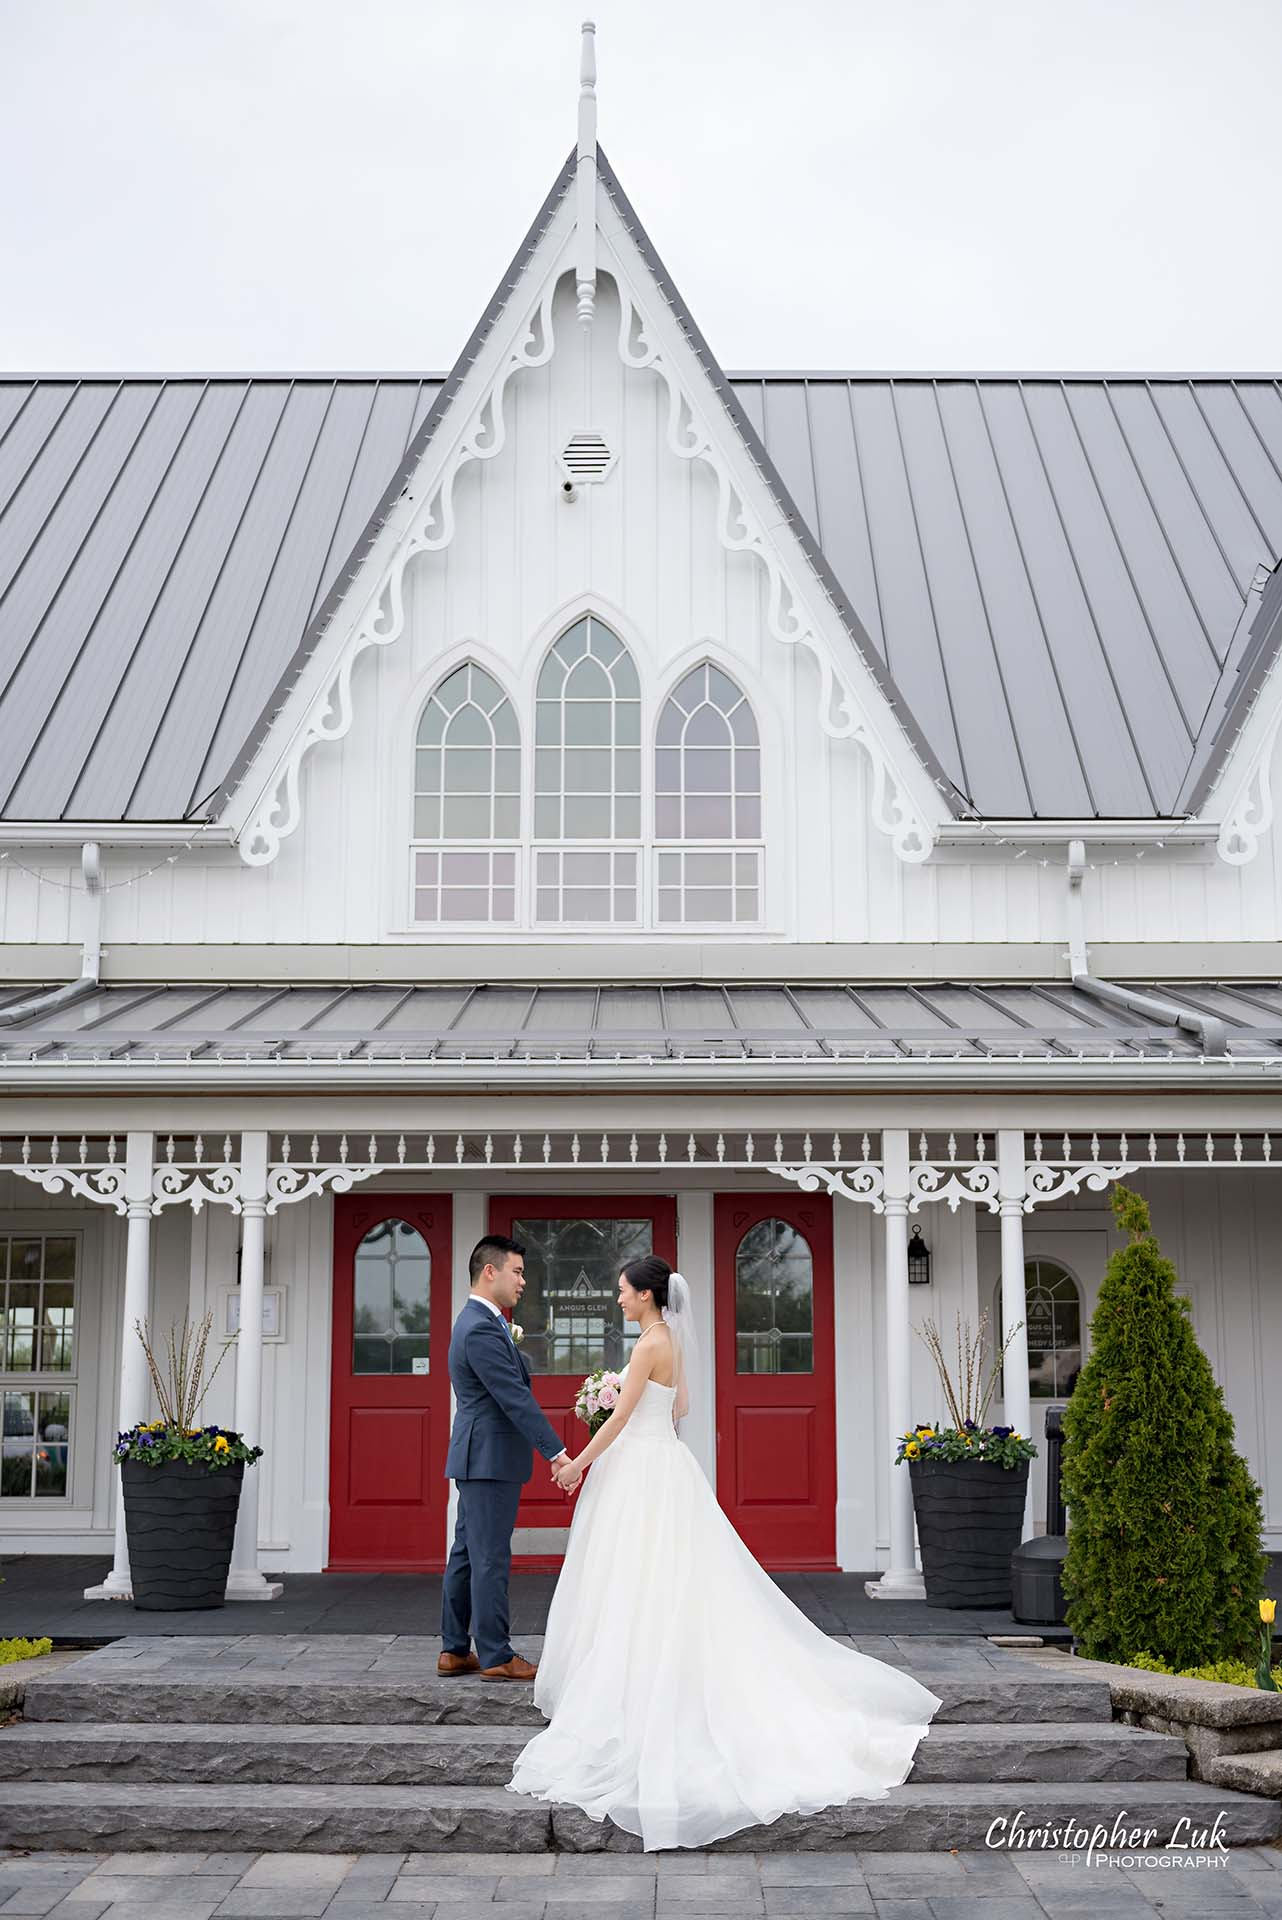 Christopher Luk Toronto Wedding Photographer Angus Glen Golf Club Markham Victoria Room Kennedy Loft Main Historic Estate Building Entrance Together Natural Candid Photojournalistic Bride Groom Bridal Gown Dress Train Staircase Looking Each Other Portrait